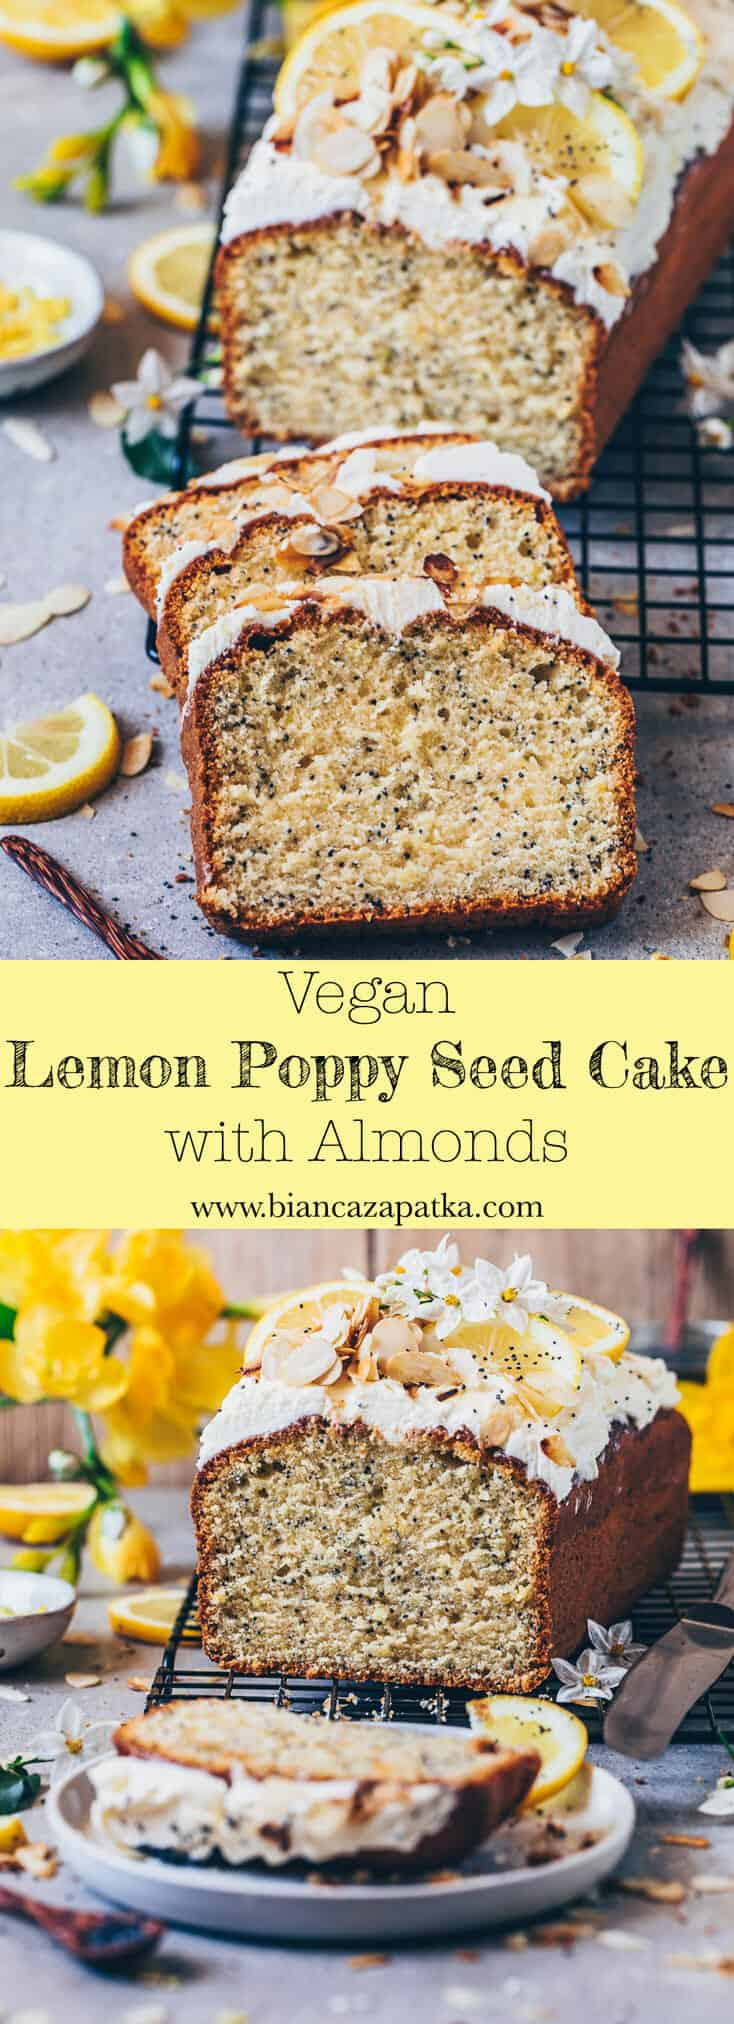 Vegan Lemon Poppy Seed Cake with Cream Cheese Frosting and almonds. It is soft, moist, delicious. Quick and easy recipe, one-bowl, gluten-free.